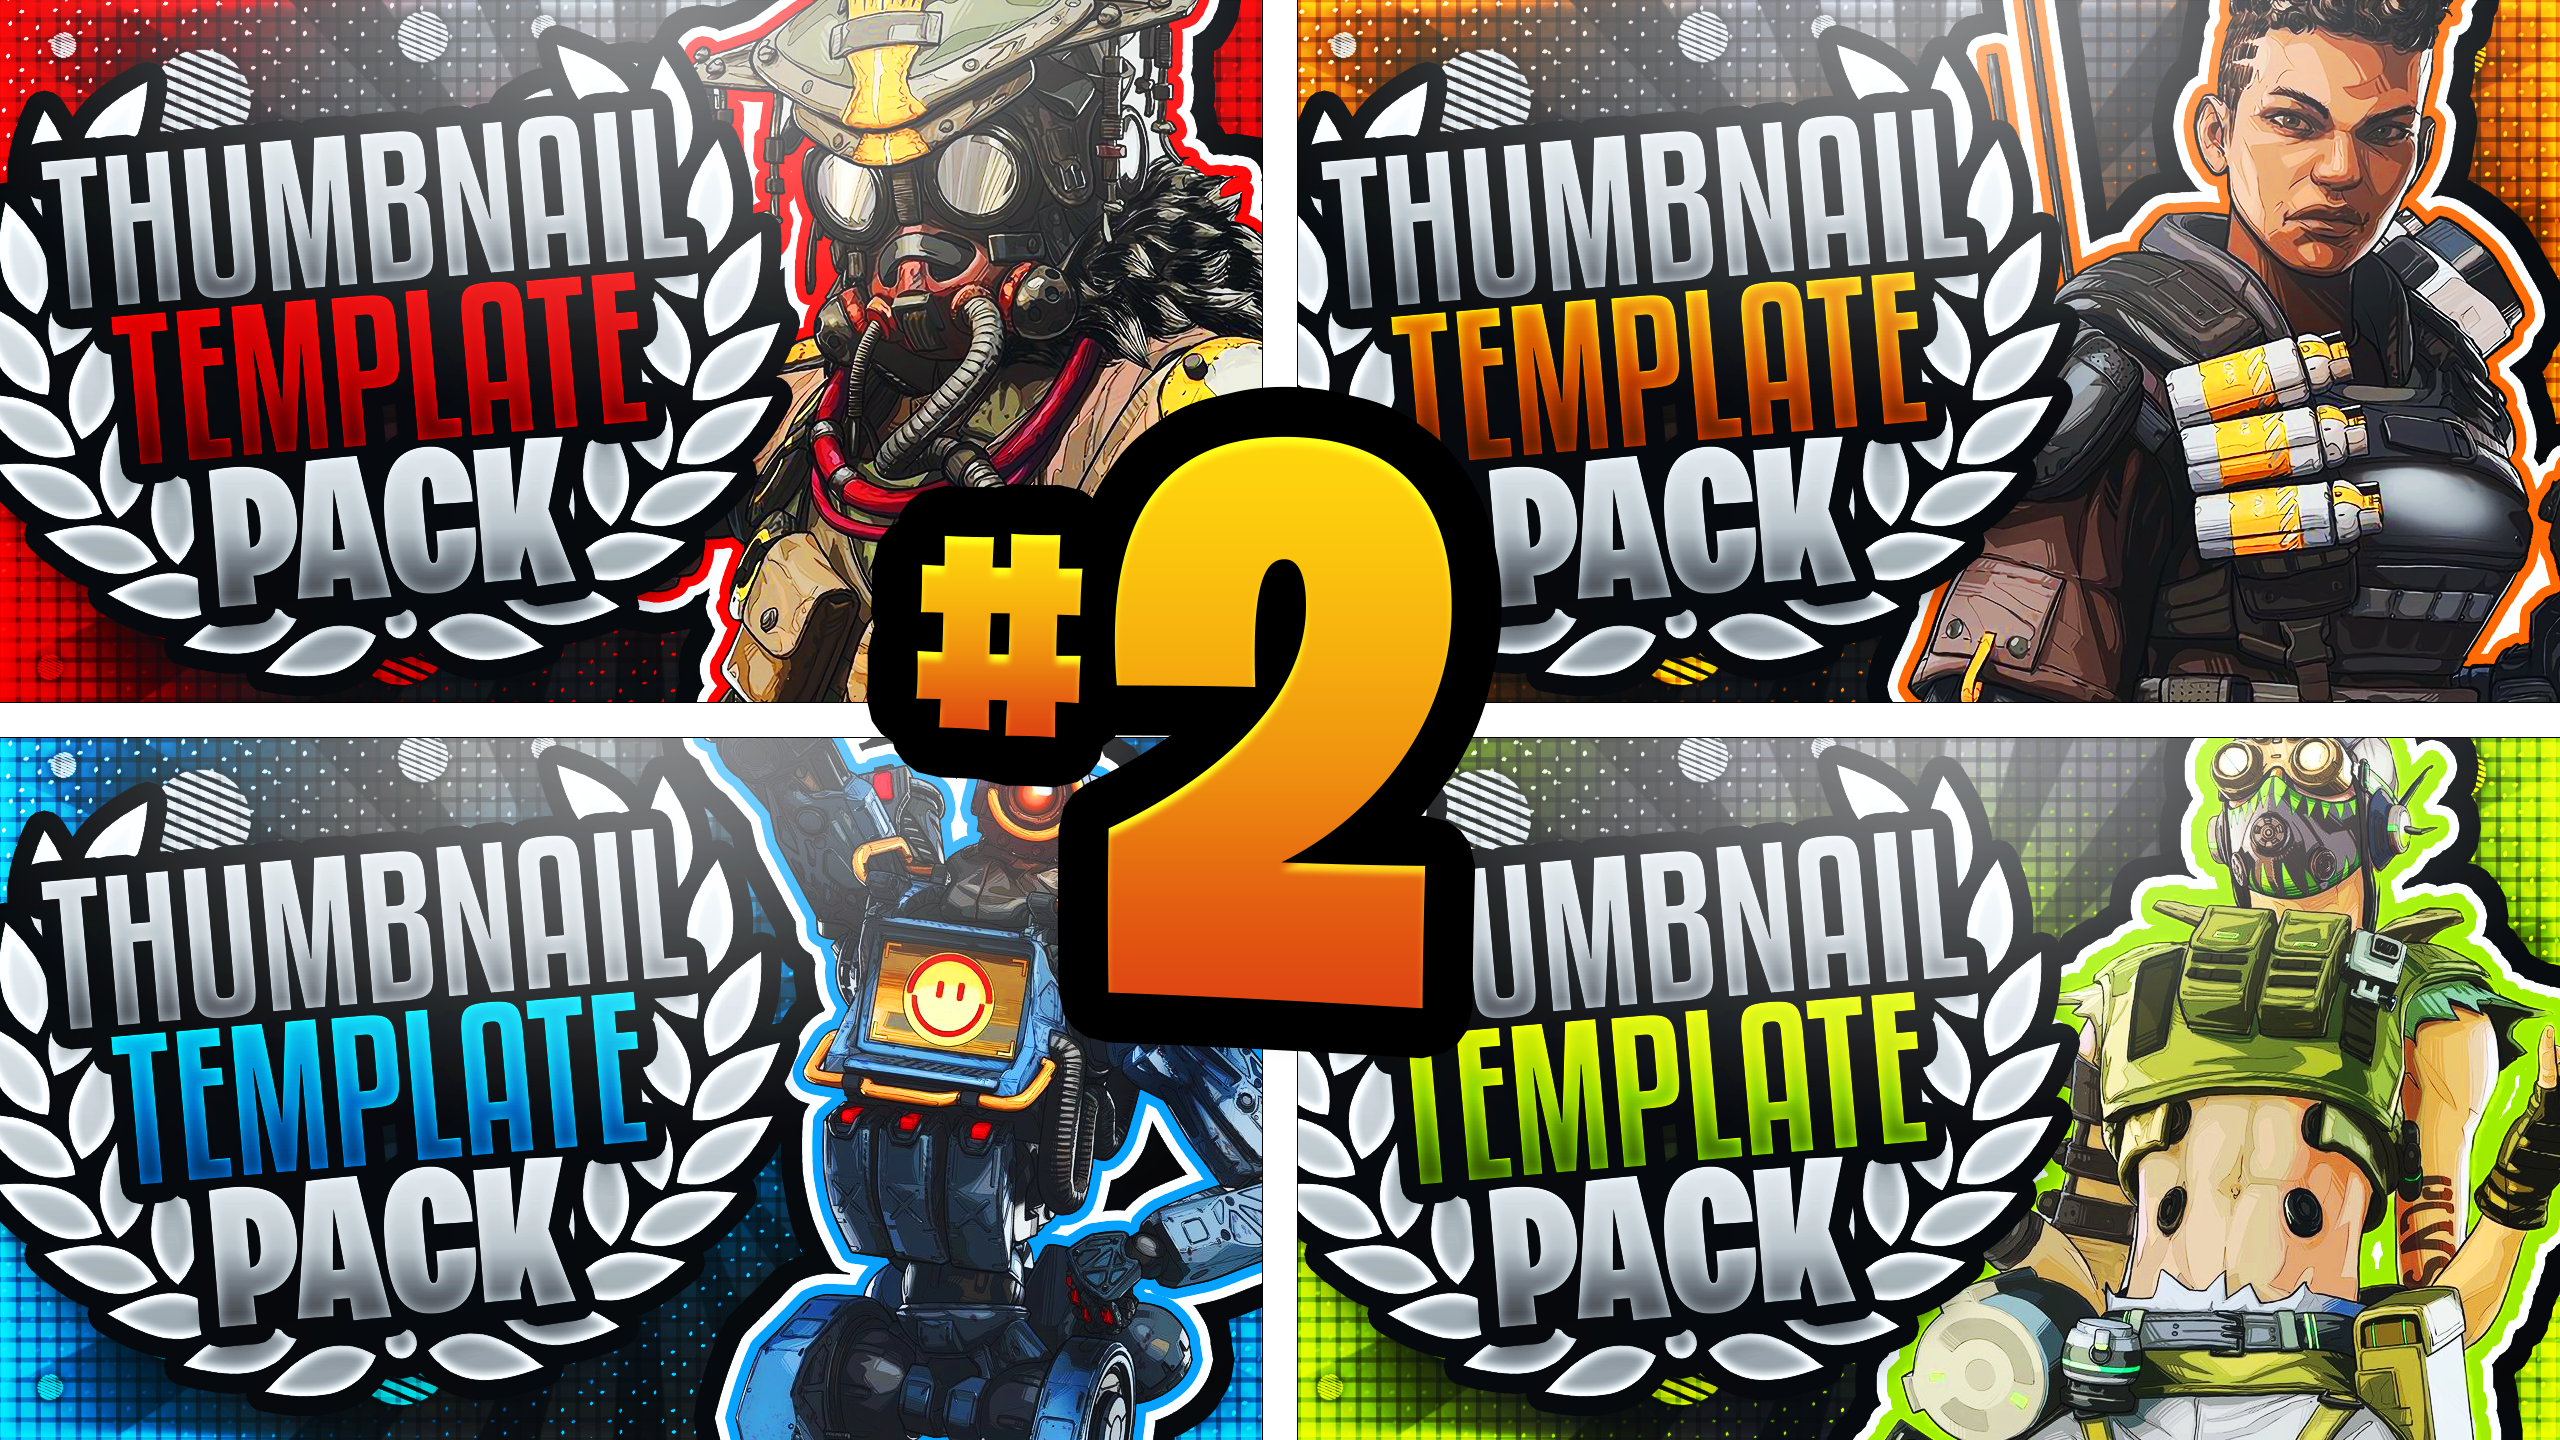 A Premium Apex Legends YouTube Thumbnail Template Pack for